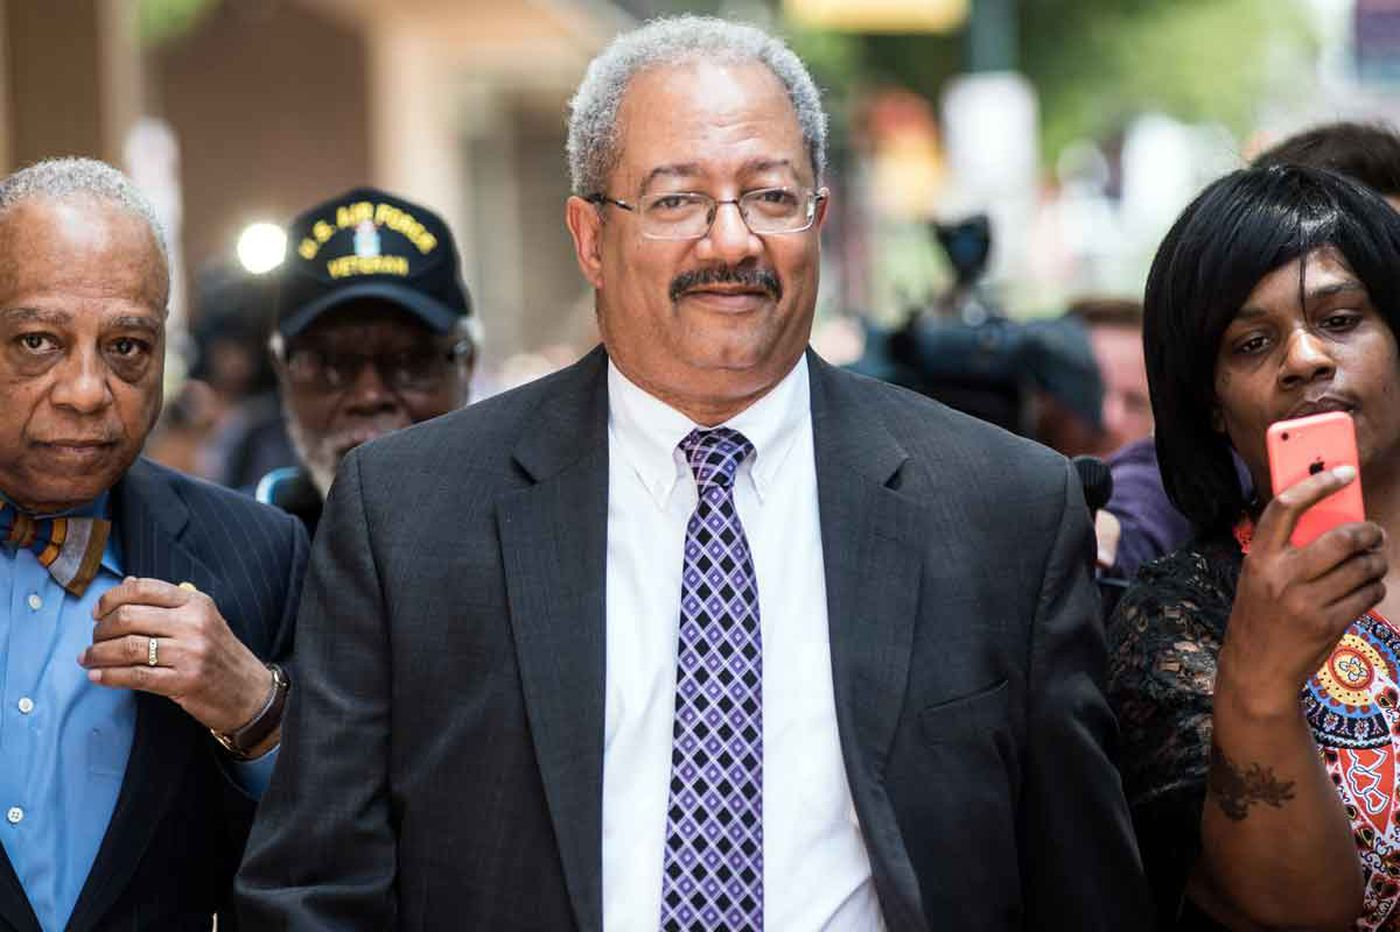 Fattah challenges conviction, citing Va. governor's case